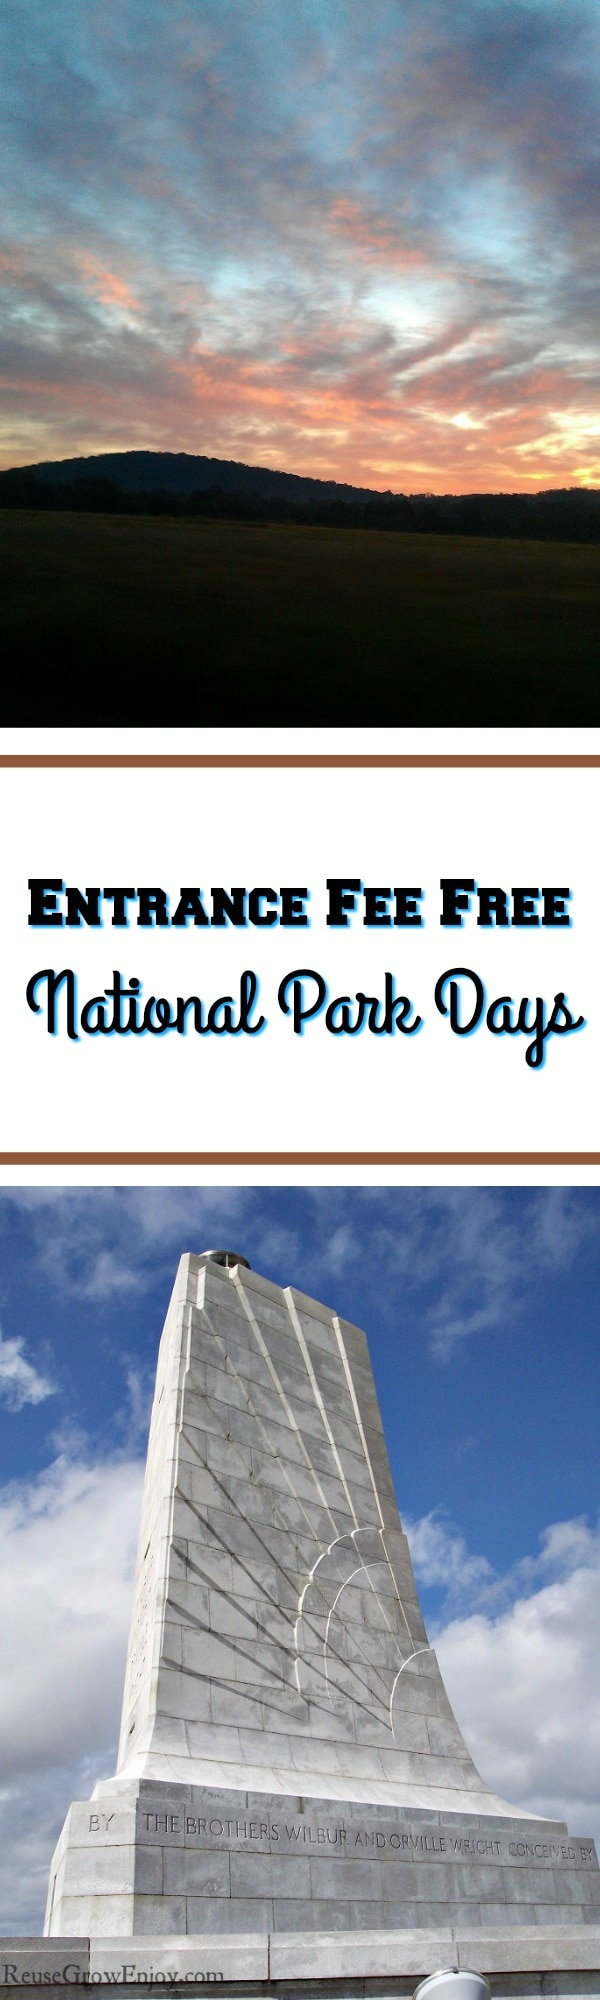 If you are looking for free things to do with the family, check out these Entrance Fee Free National Park Days!